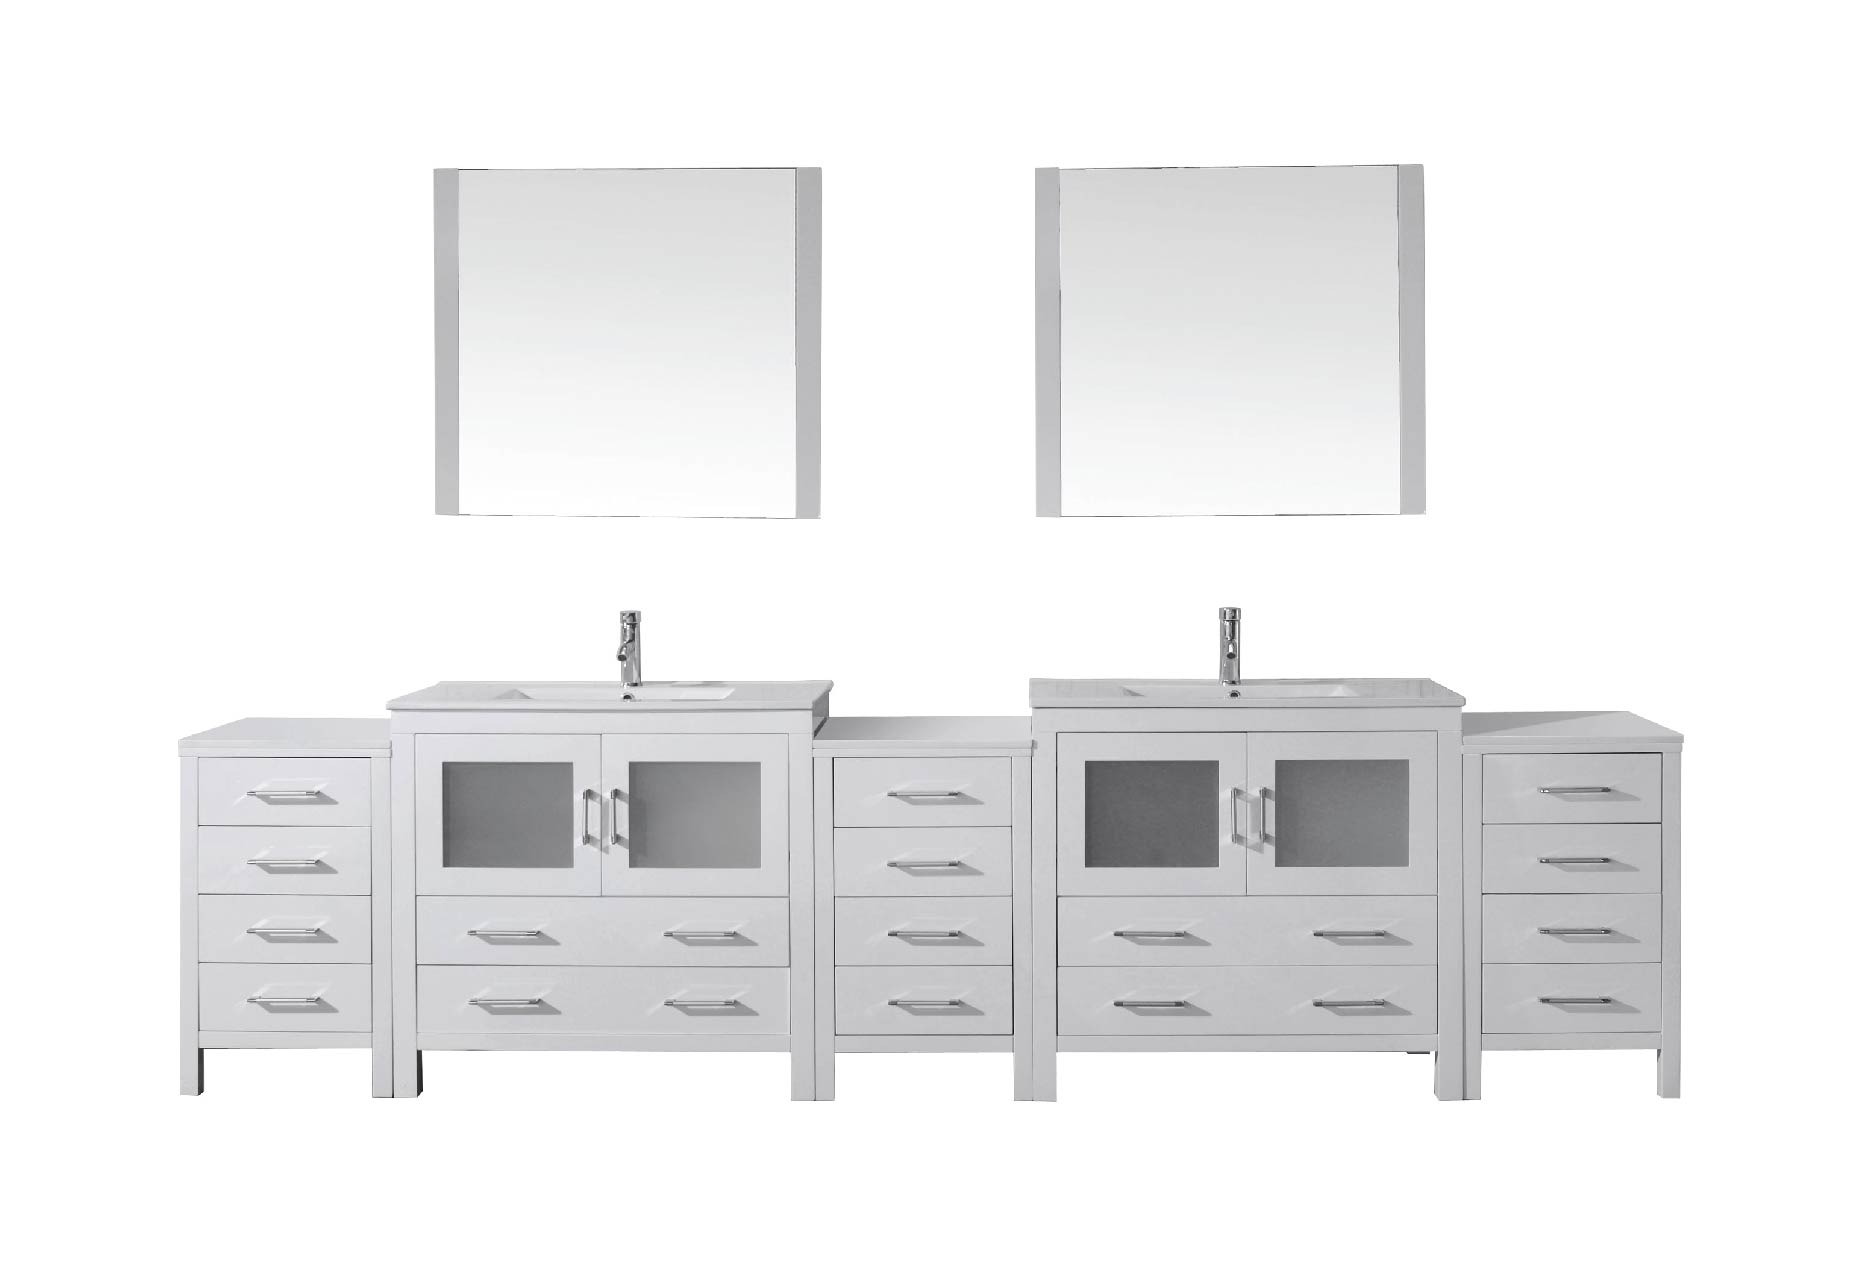 View all Vanity Styles